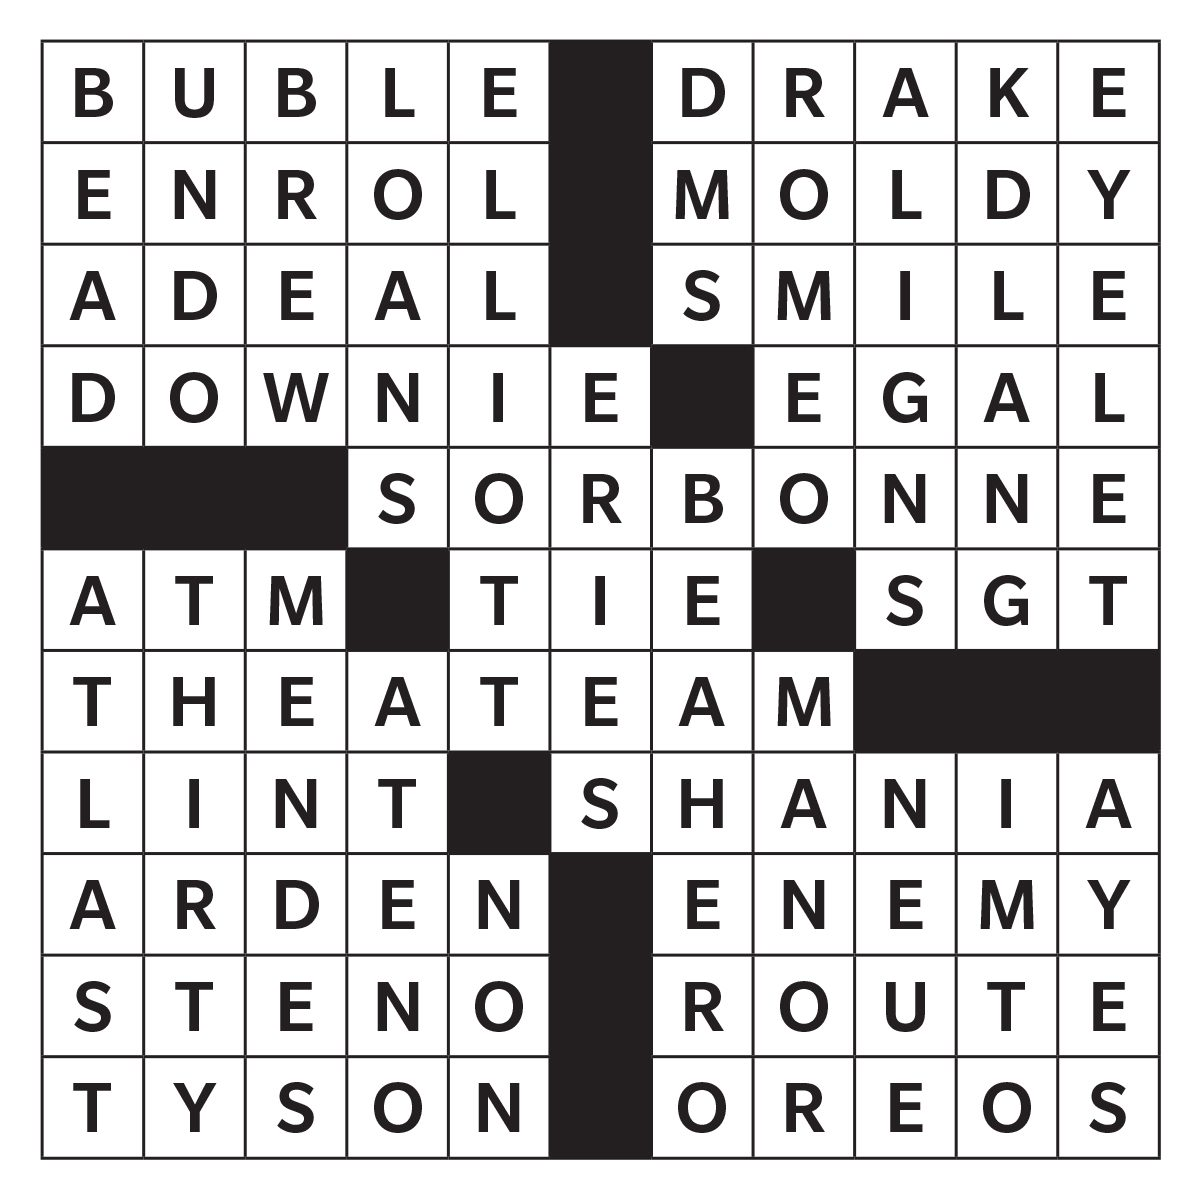 Printable crossword puzzle - May 2019